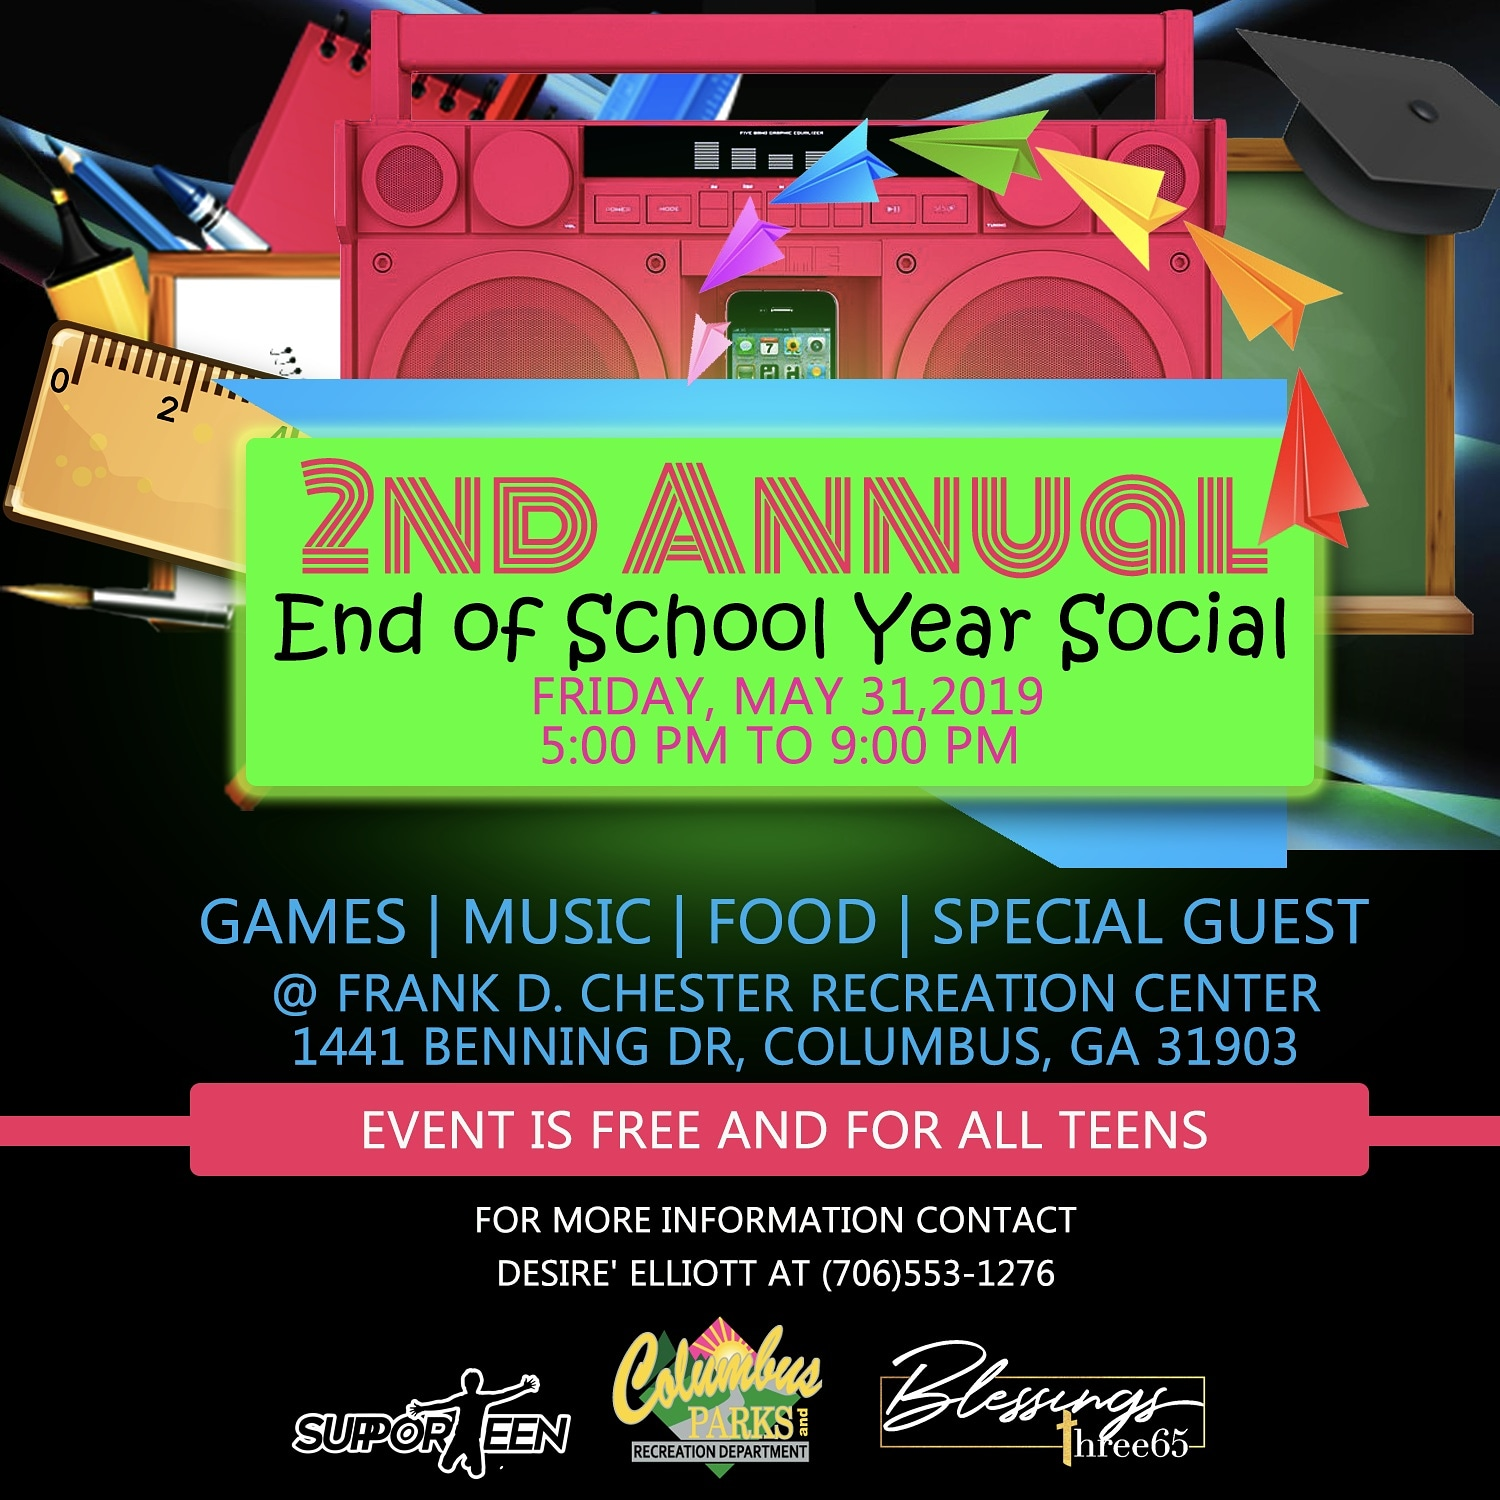 End of the School Year Social